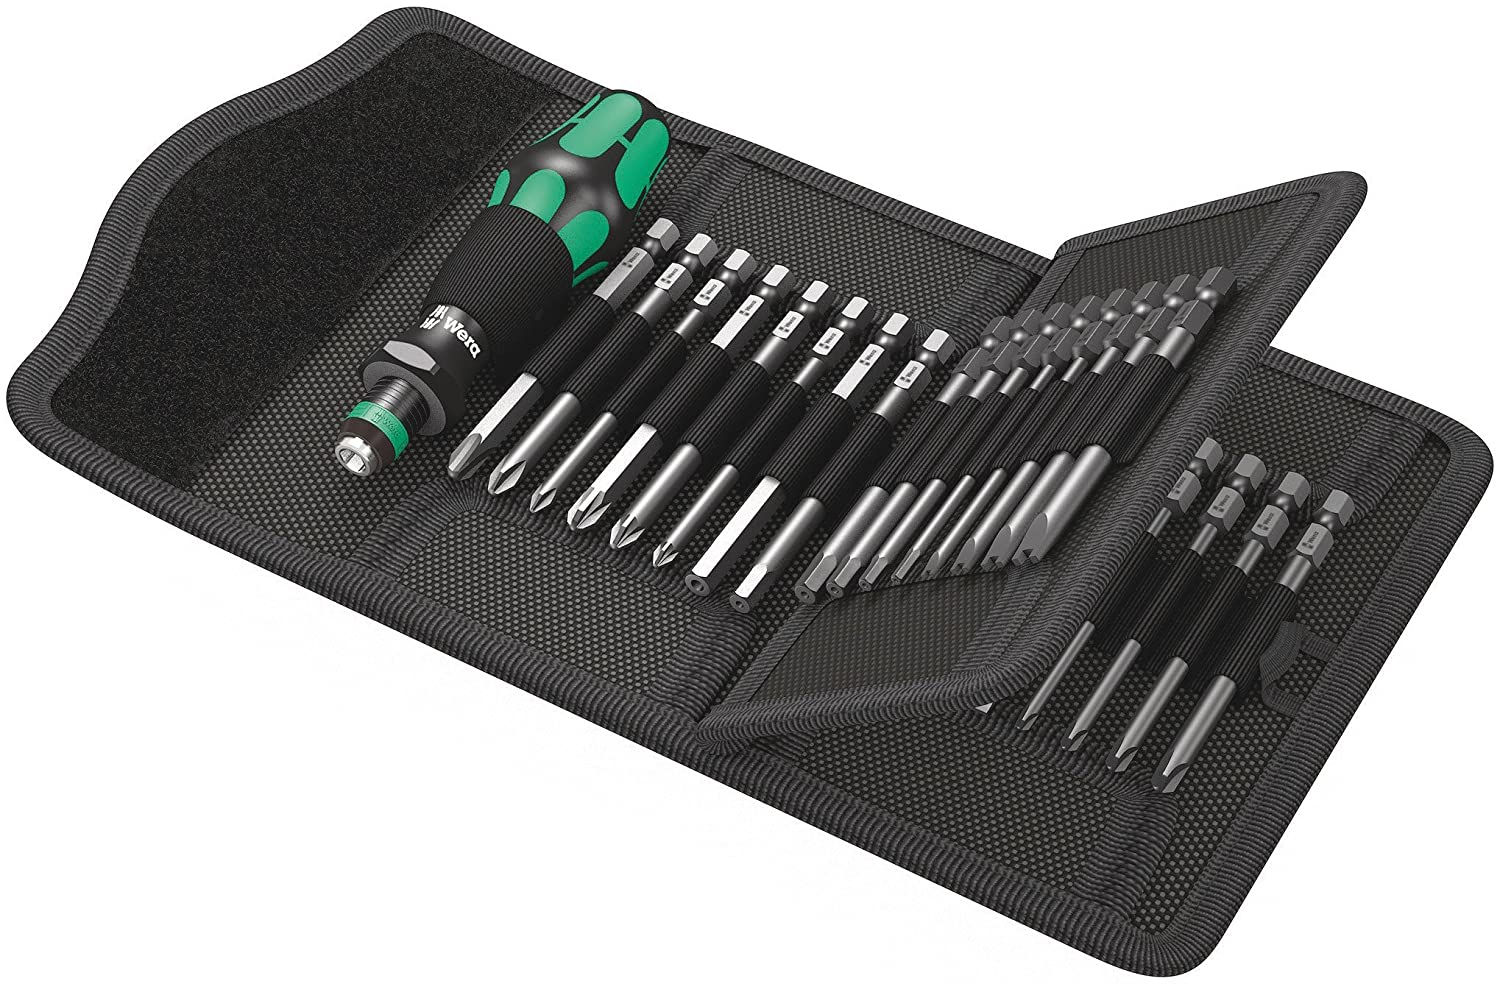 Wera WER057110 Kraftform Kompakt 70 All Round Screwdriver Bit Set 32 Piece